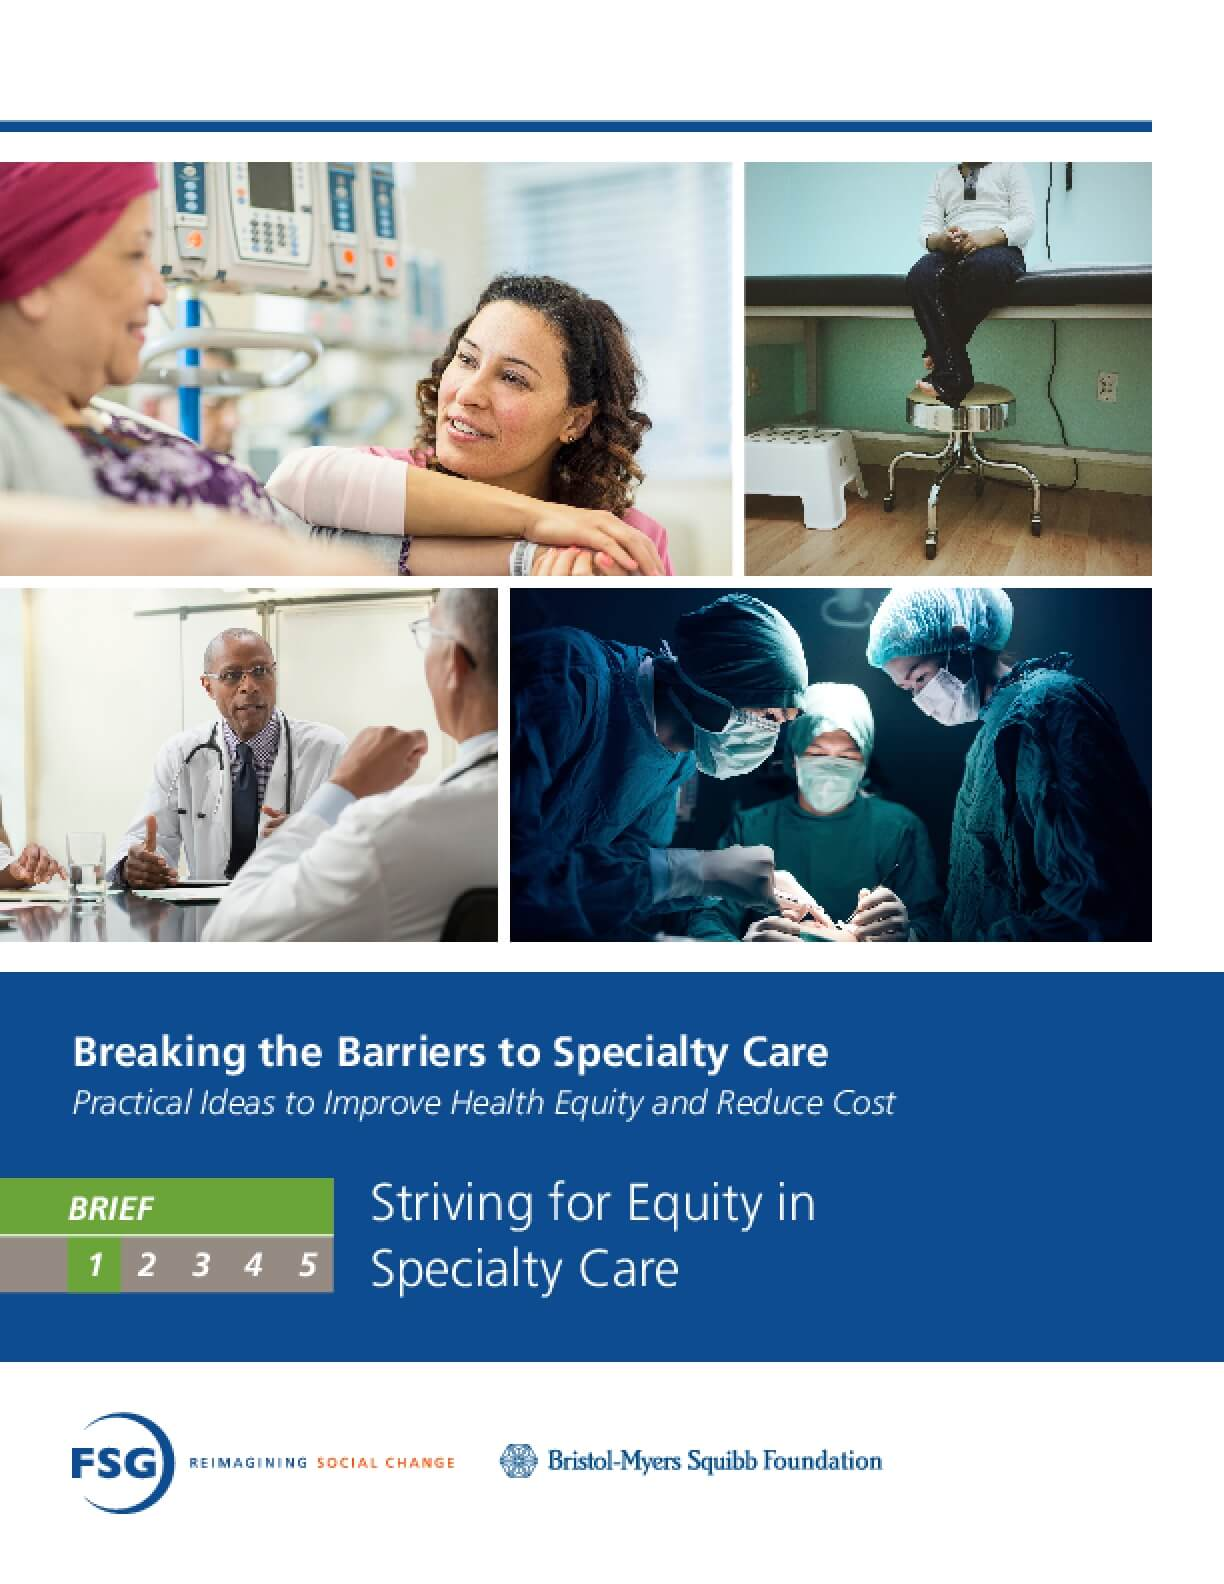 Breaking the Barriers to Specialty Care: Practical Ideas to Improve Health Equity and Reduce Cost - Striving for Equity in Specialty Care